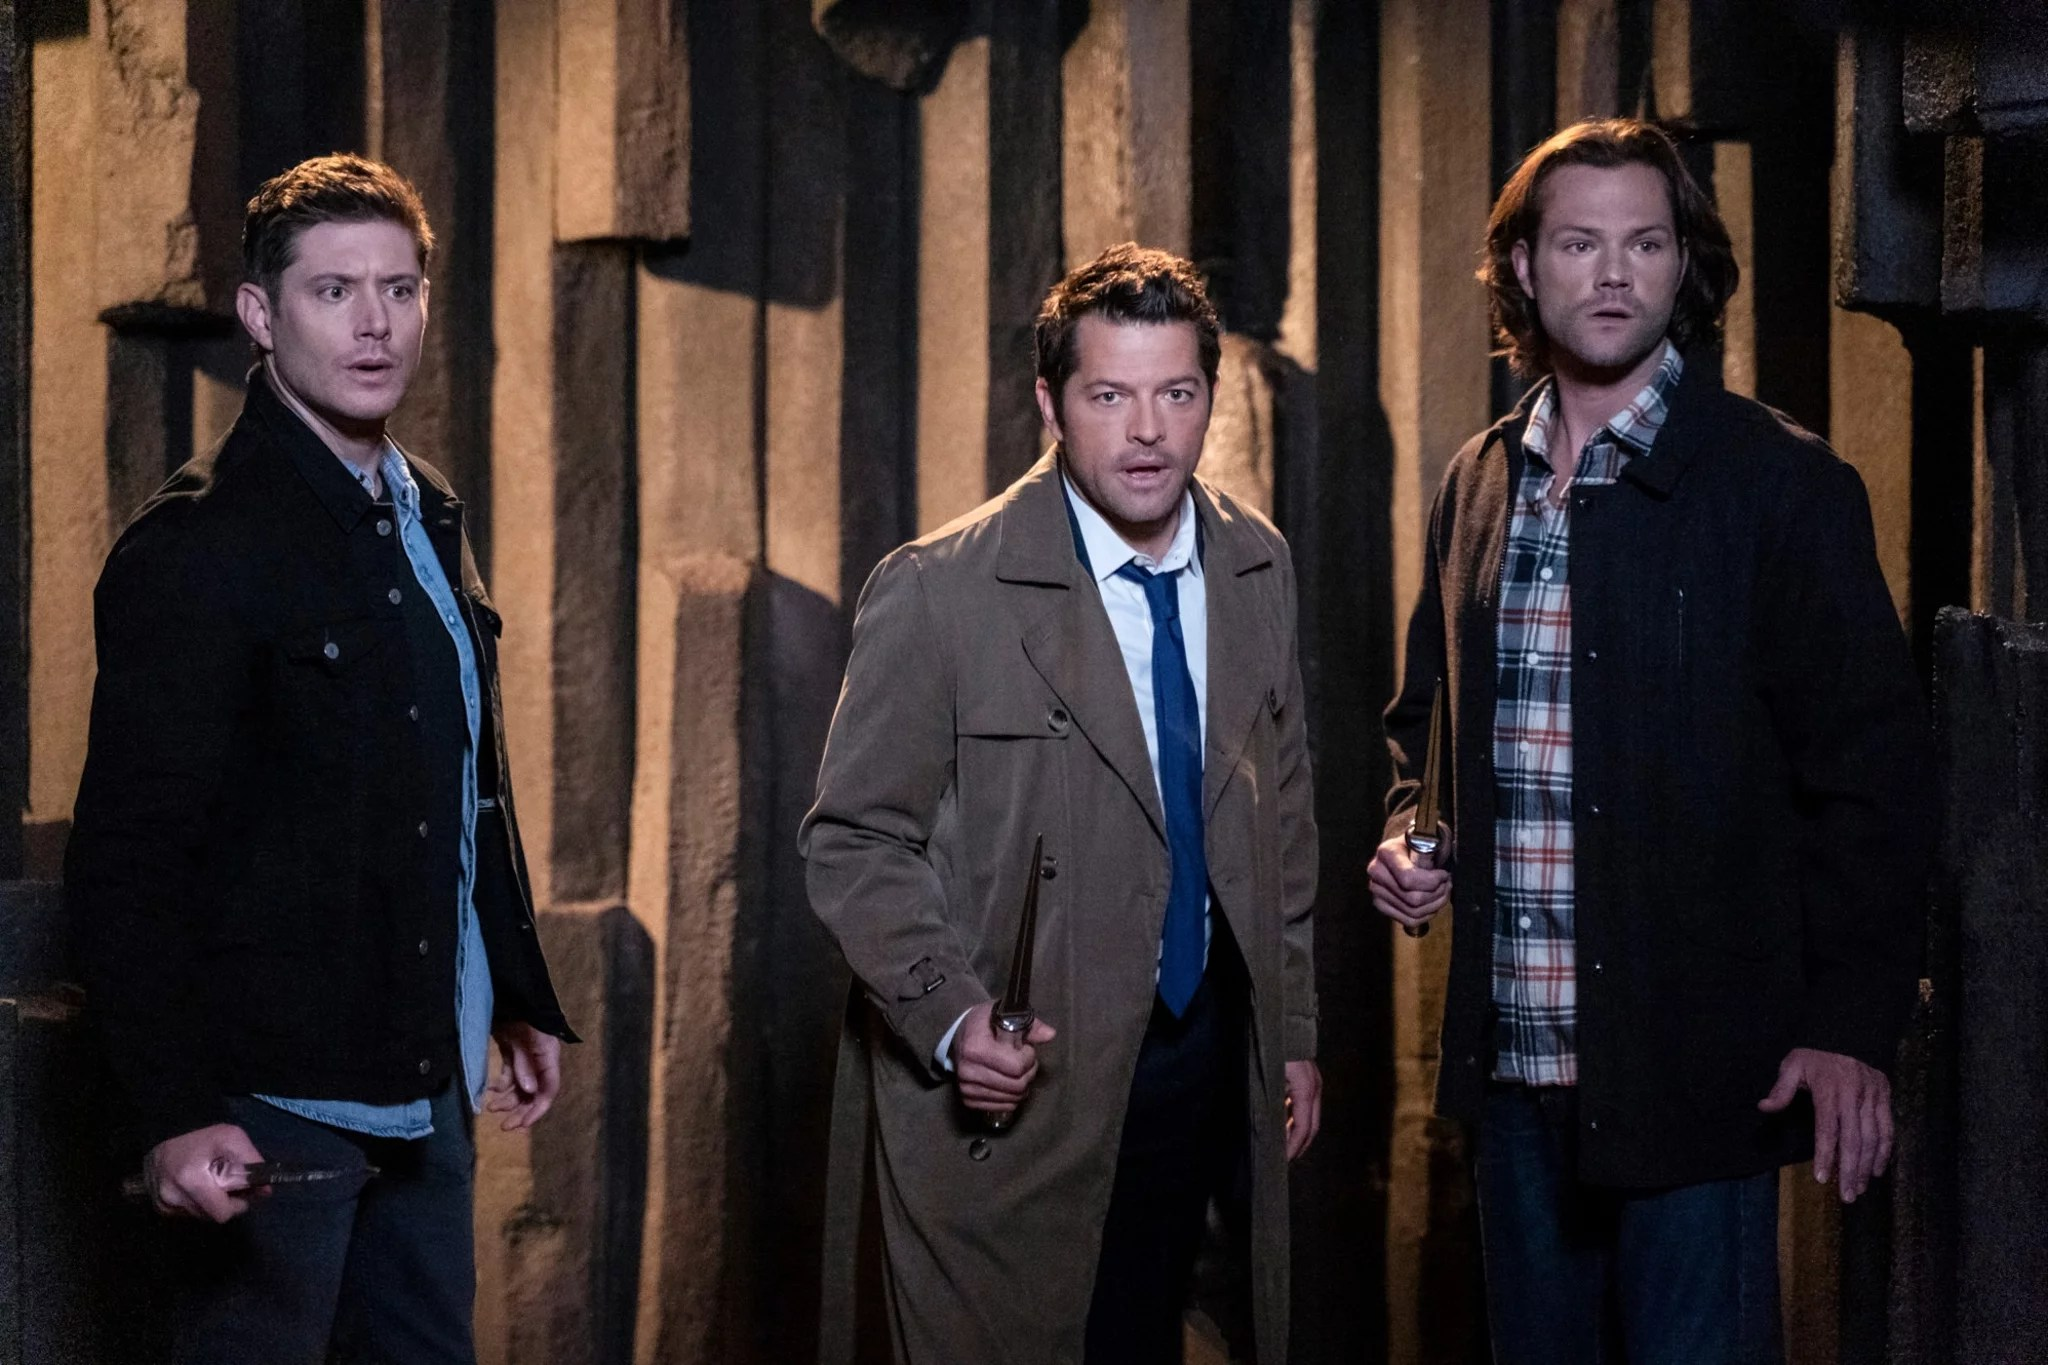 SUPERNATURAL, from left to right: Jensen Ackles, Misha Collins, Jared Padalecki, 'Our Father Who's Not in Heaven', (Season 15, episode 1508, released December 12, 2019), photo: Colin Bentley / The CW / courtesy Everett Collection